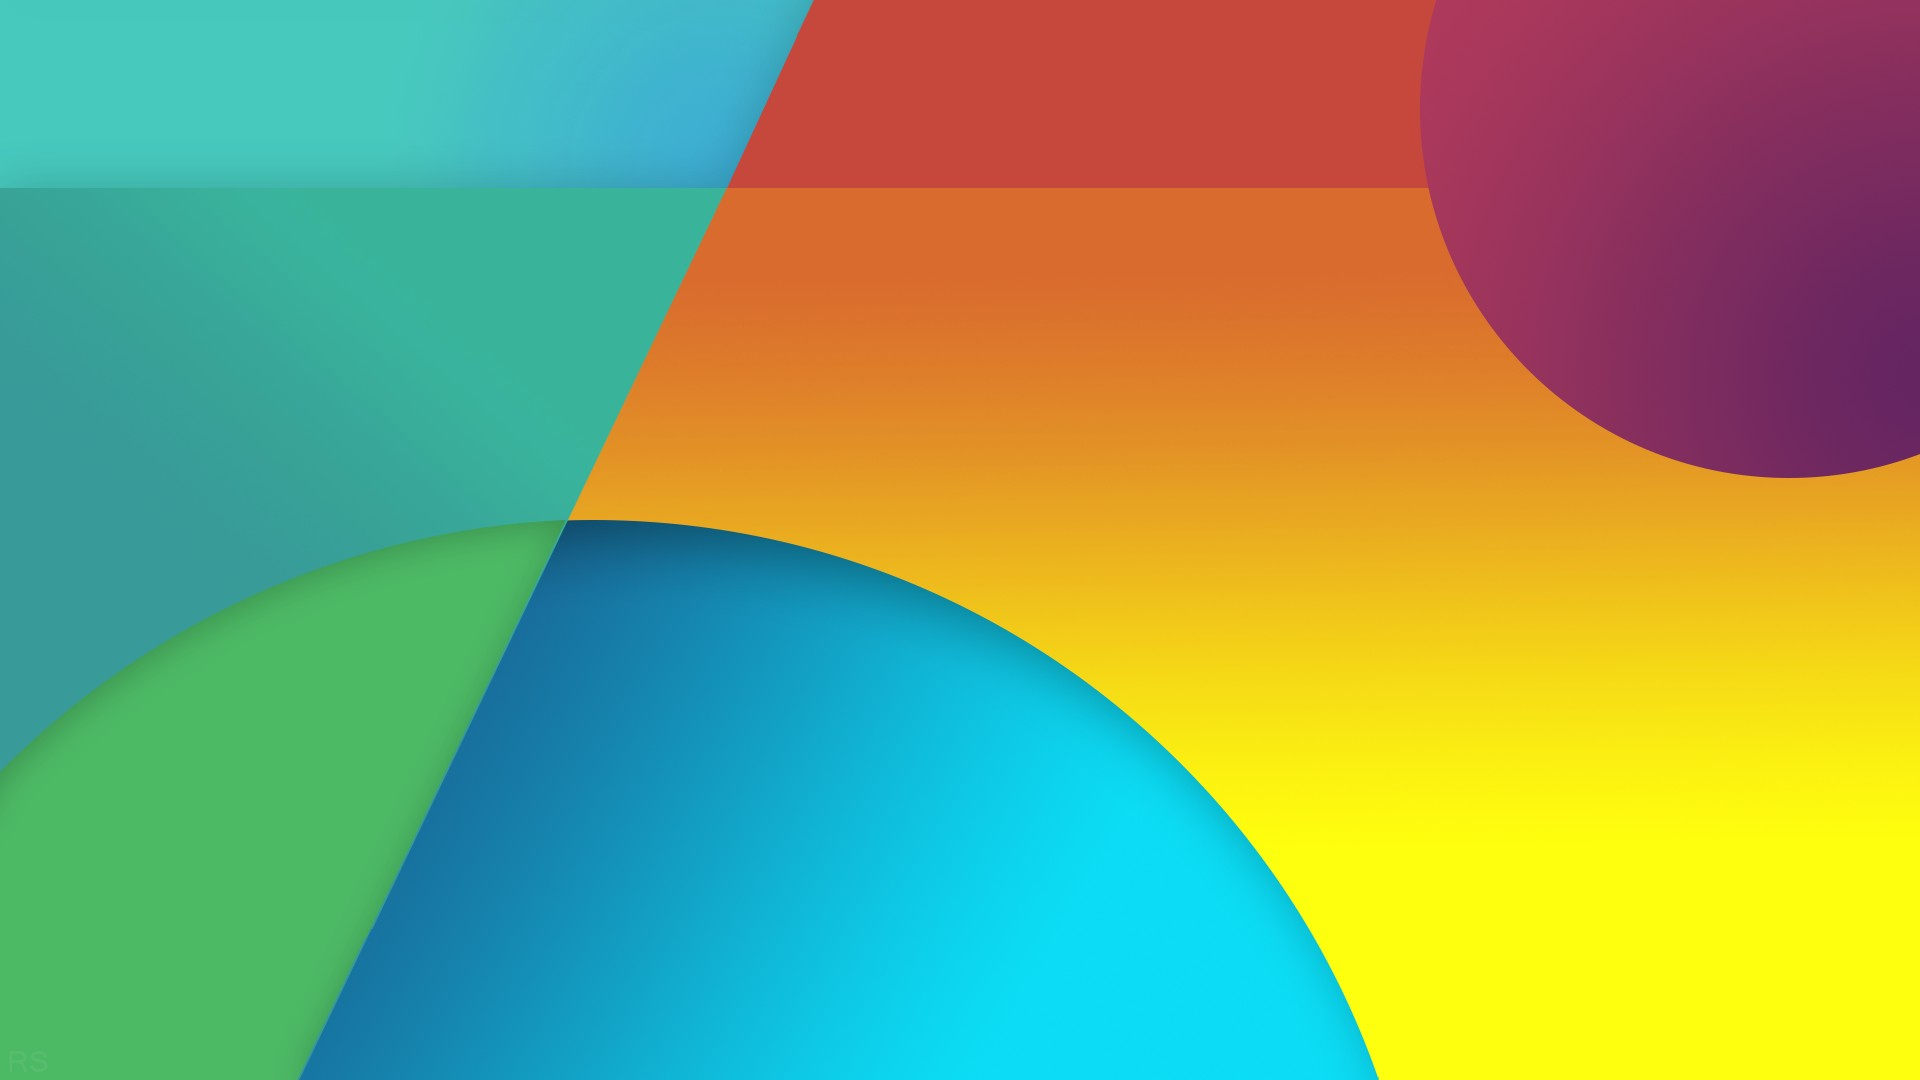 1920x1080 nexus 5 stock wallpaper for android download android background